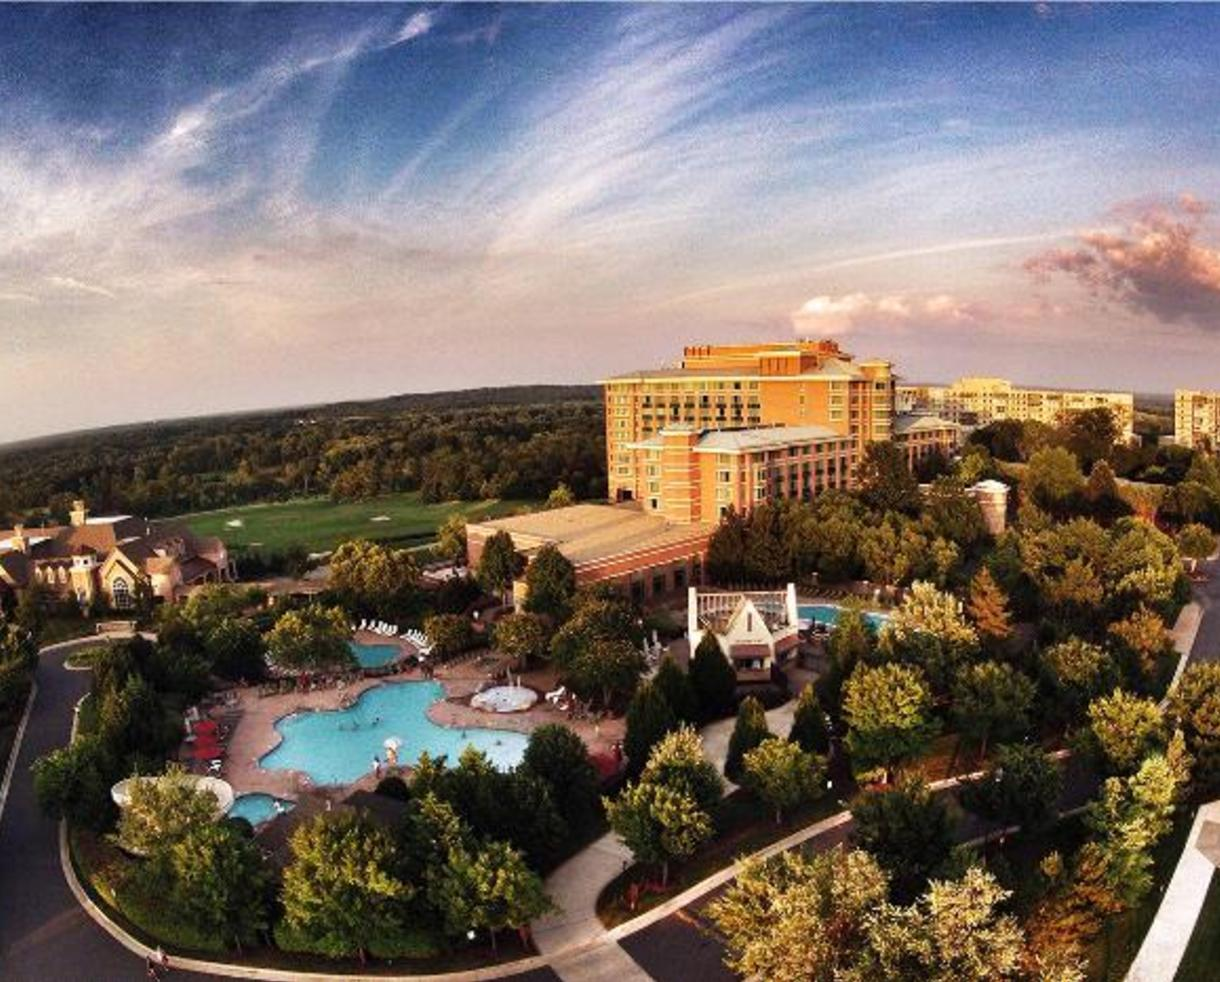 FALL OR WINTER 2016 - $149 for Lansdowne Resort Overnight Stay + $109/Night for Multiple Rooms! (Up to 49% Off!)